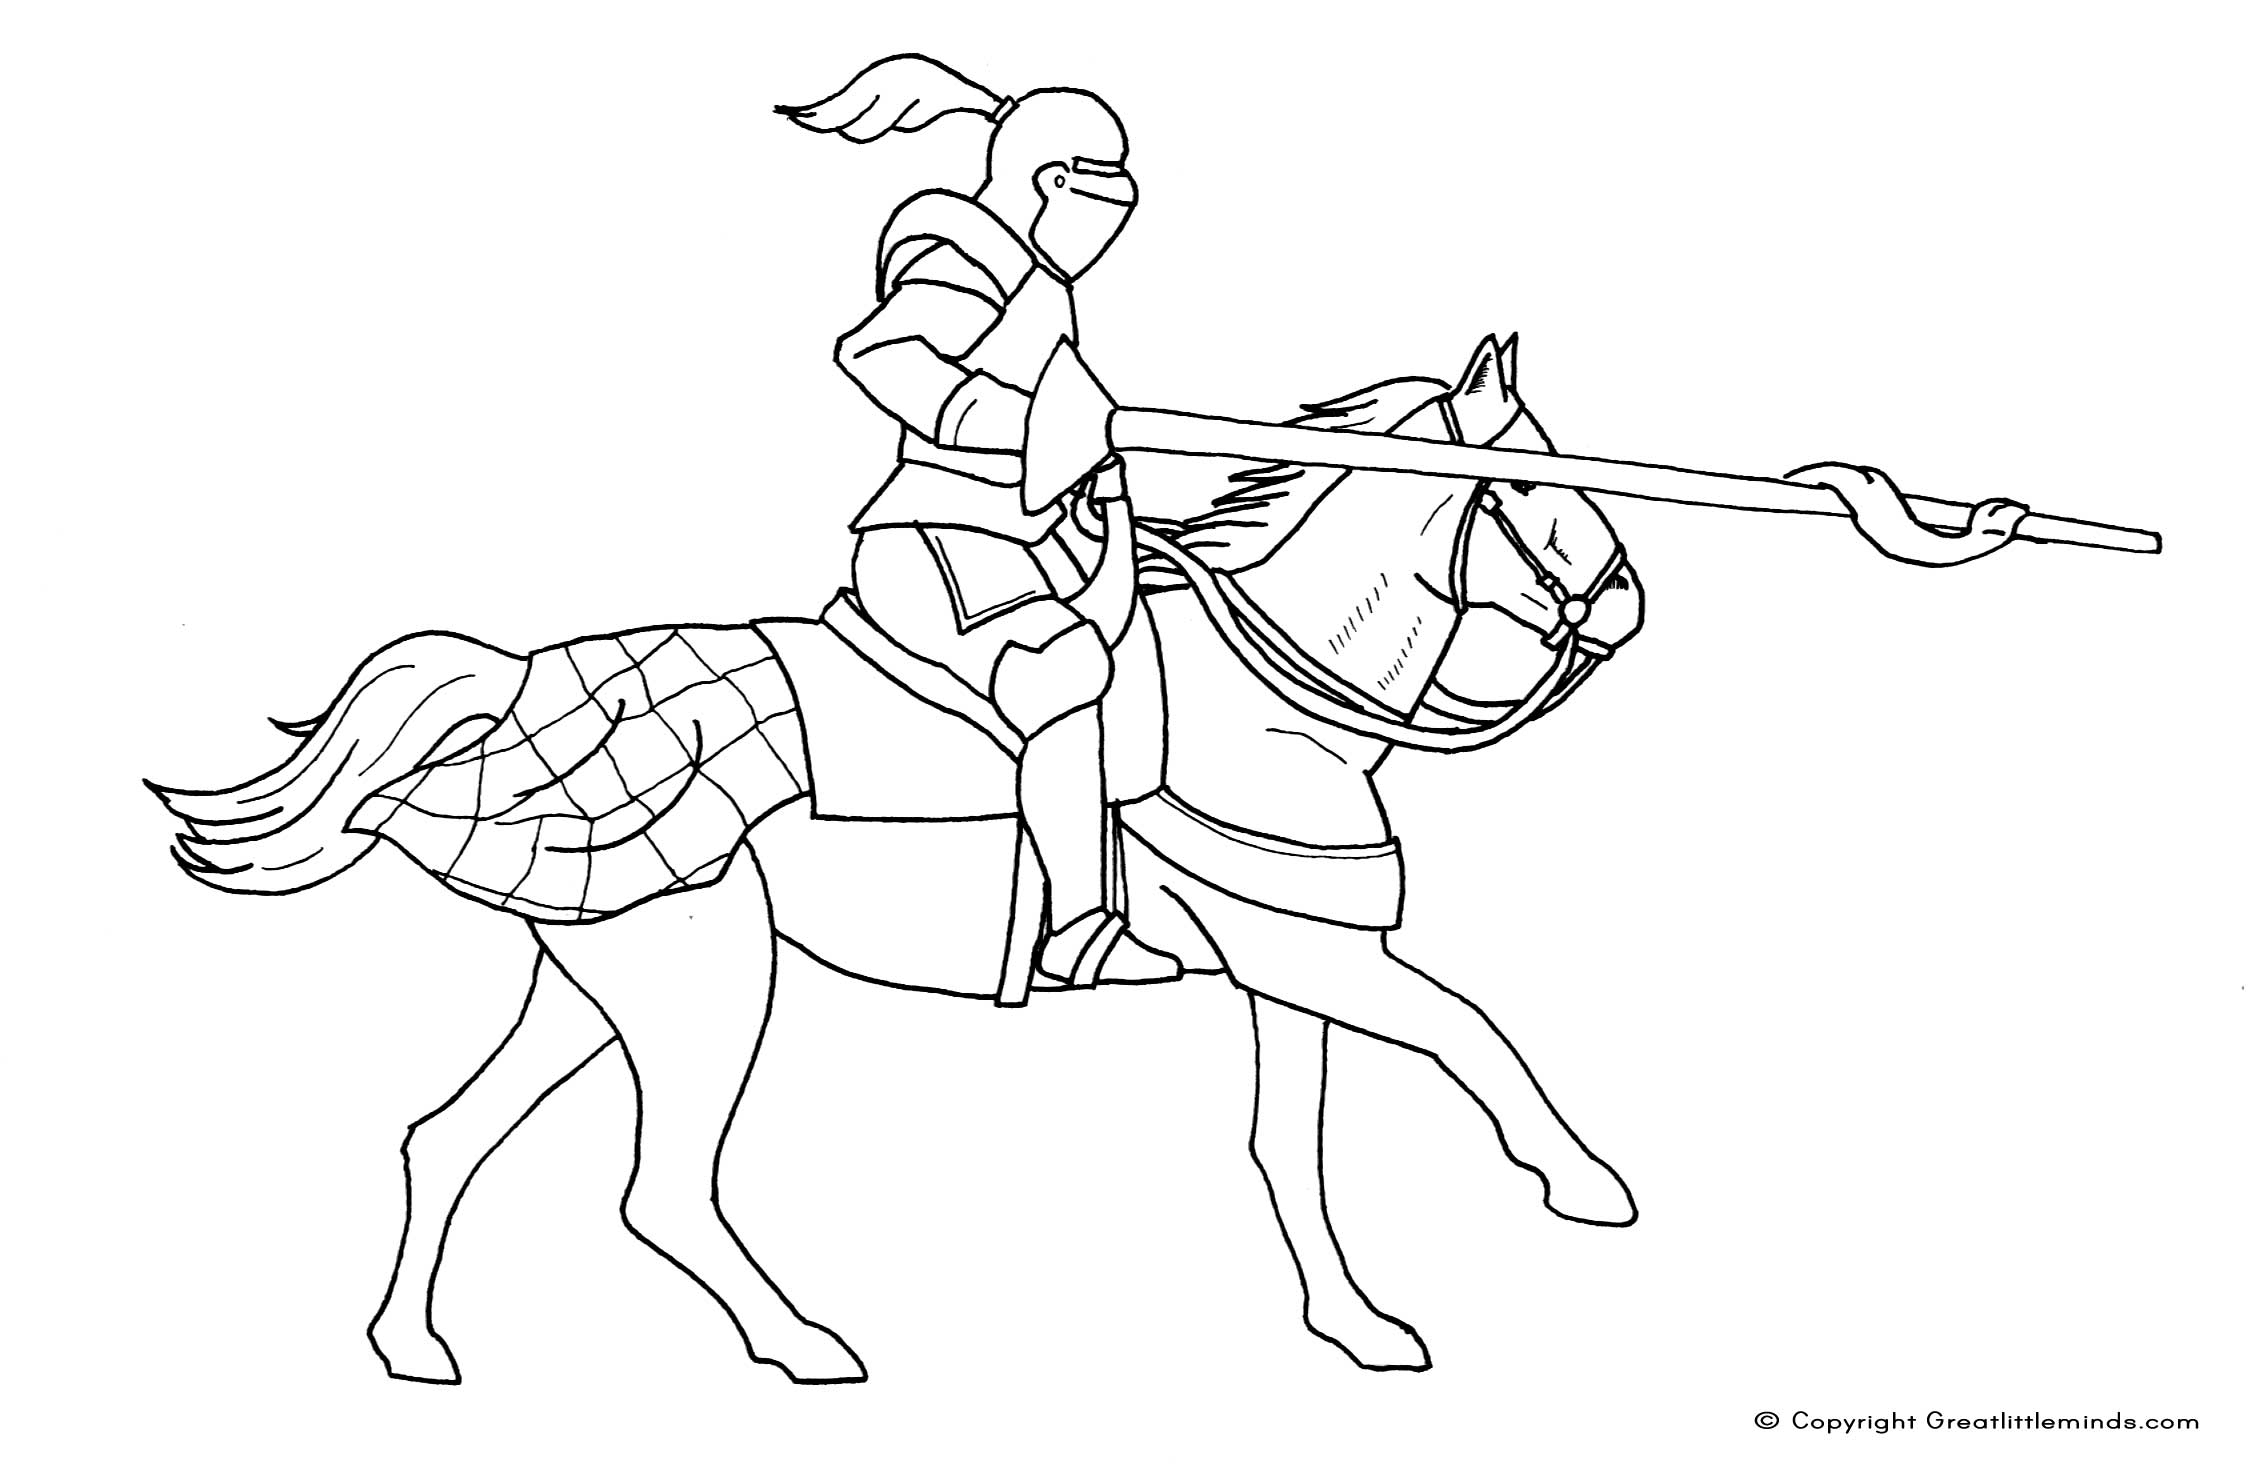 knight coloring pages - colouring me val knight on horse